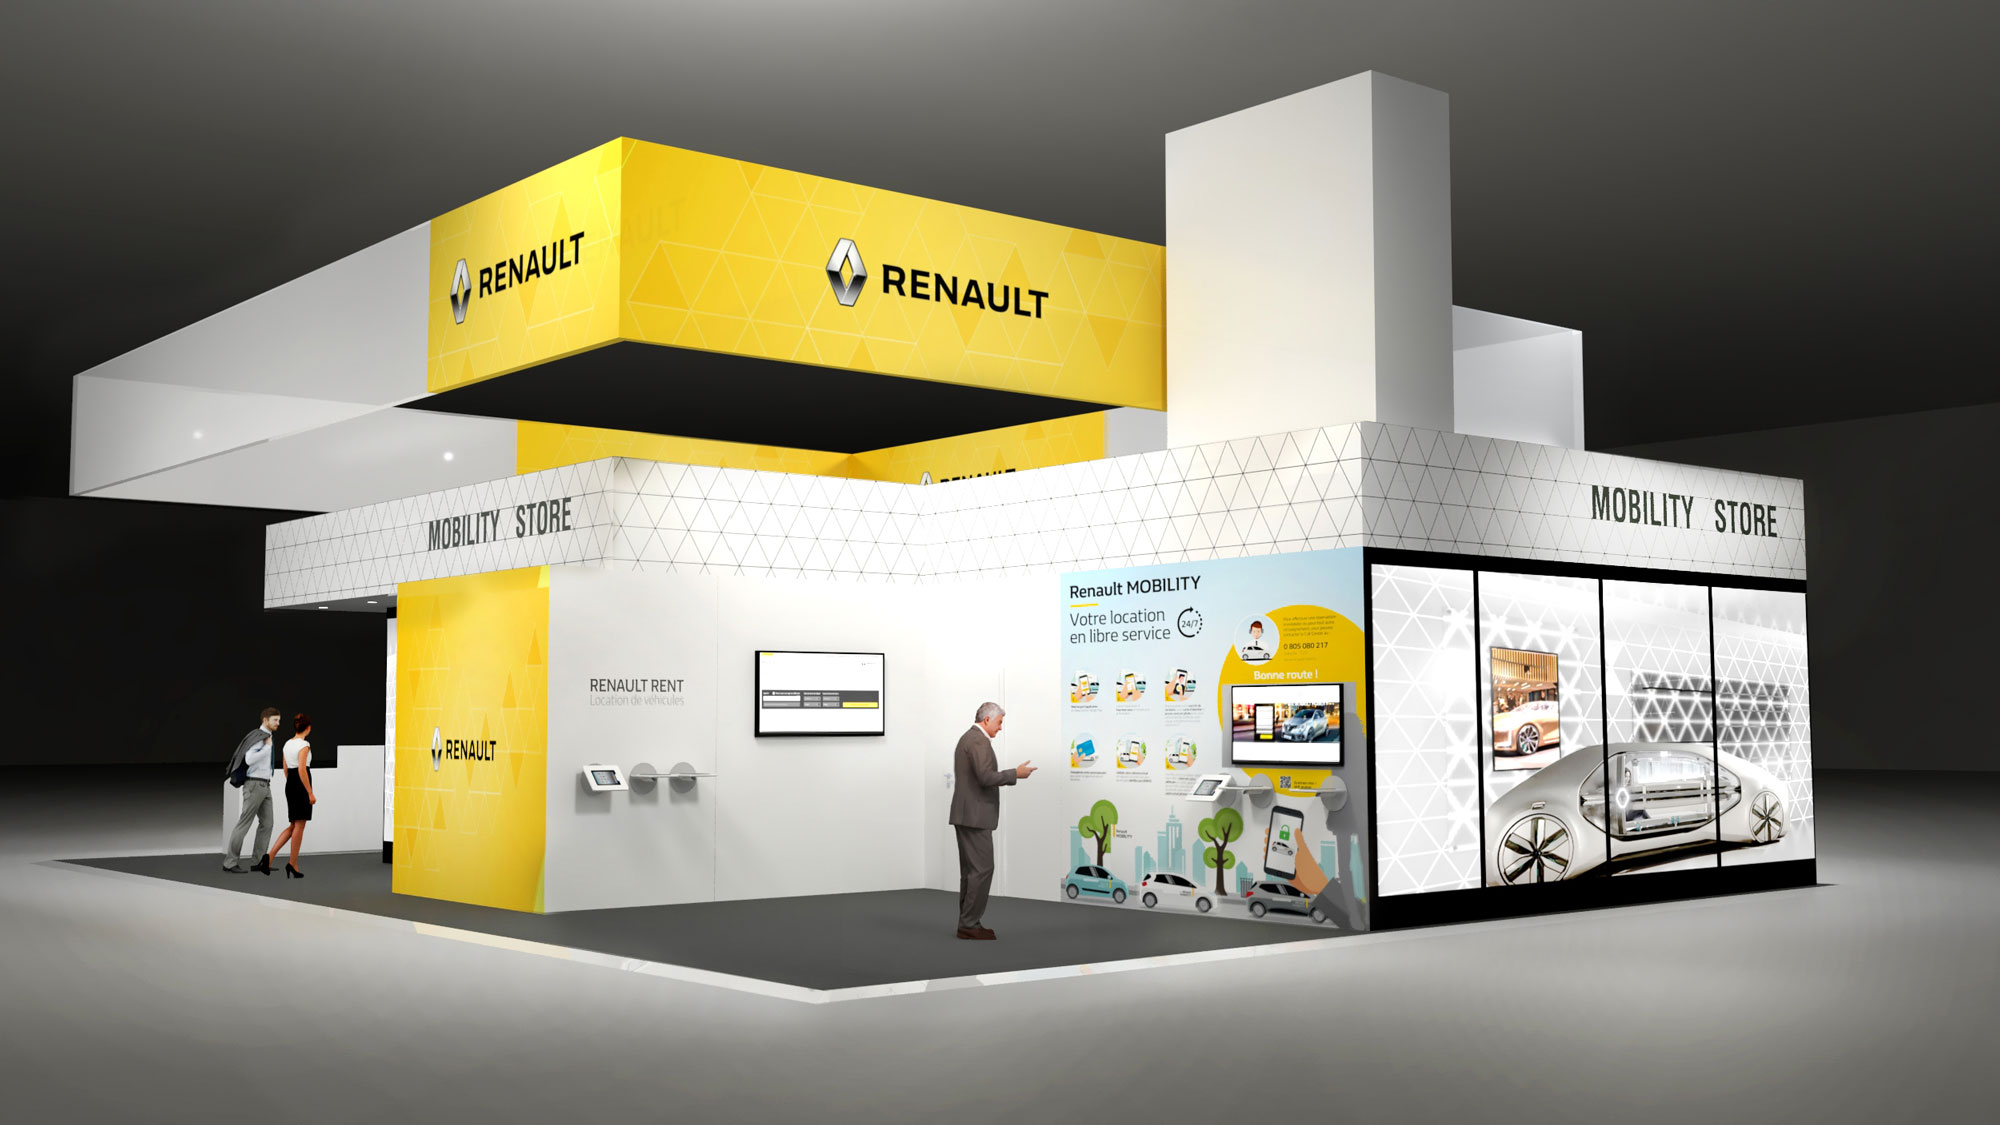 Event Renault Mobility Stand